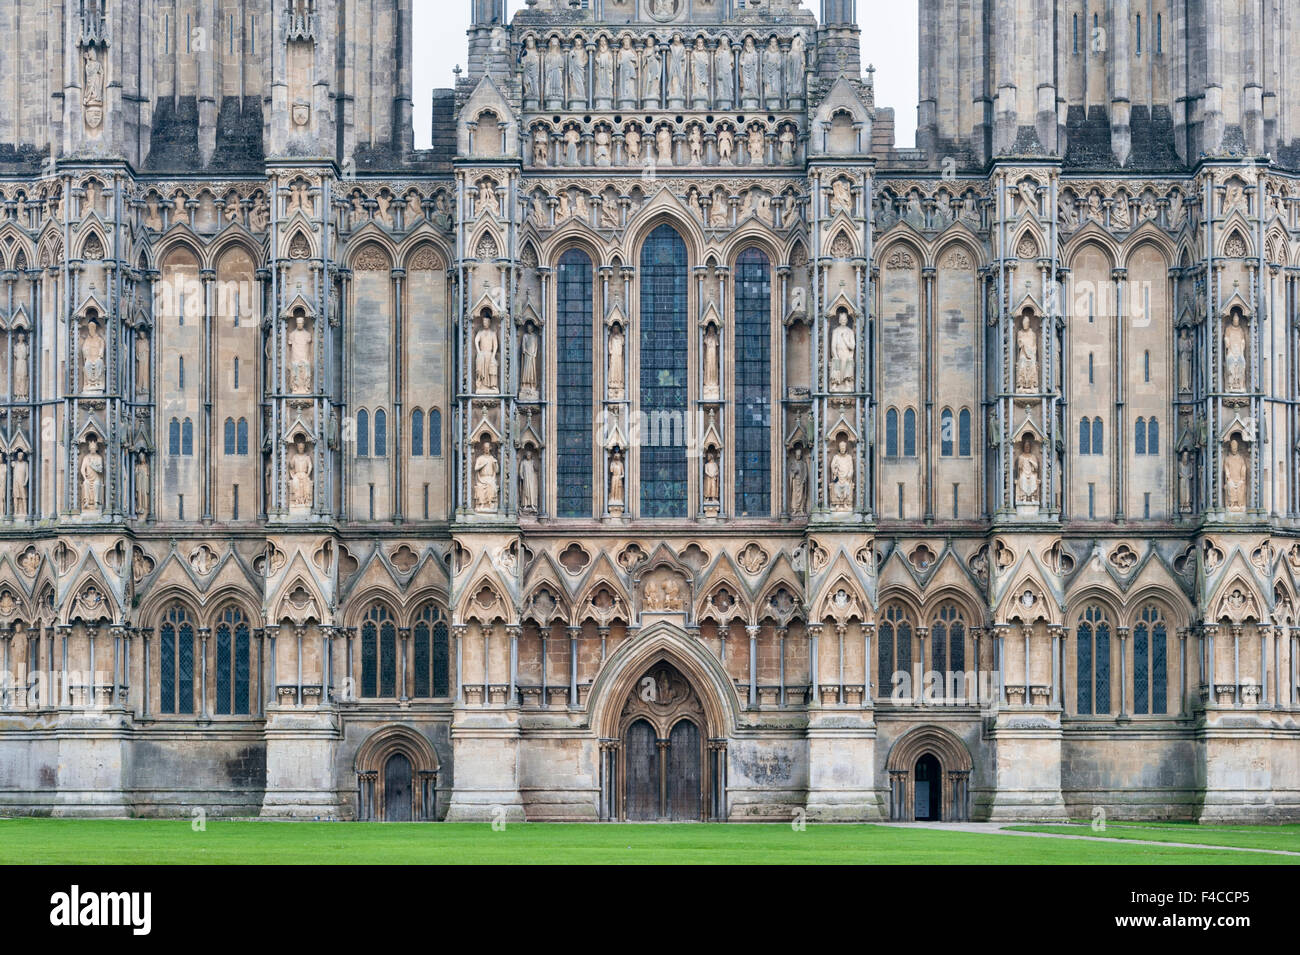 The Early English Gothic west front dates from about